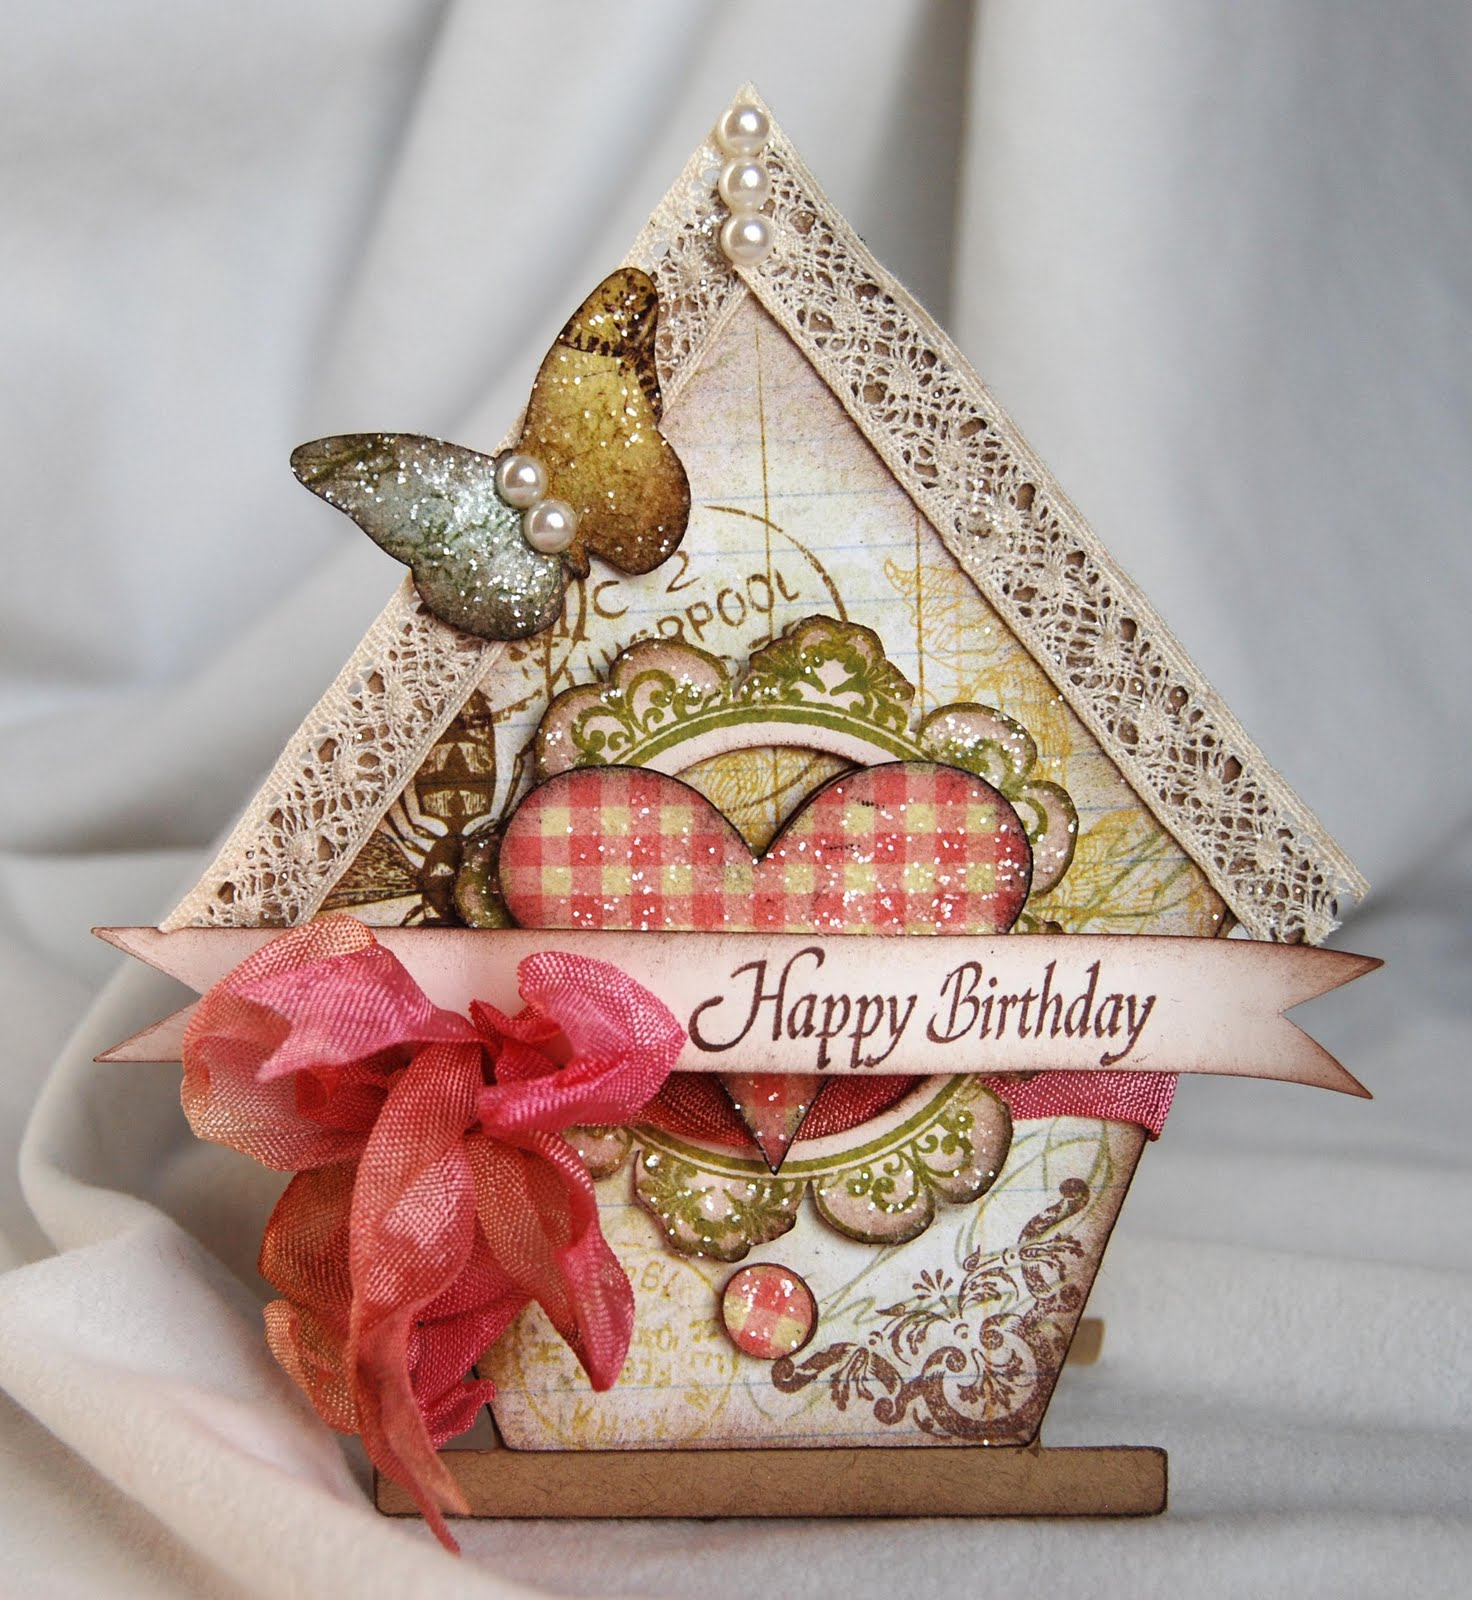 Thoughts Of A Cardmaking Scrapbooker!: Happy Birthday Kellie